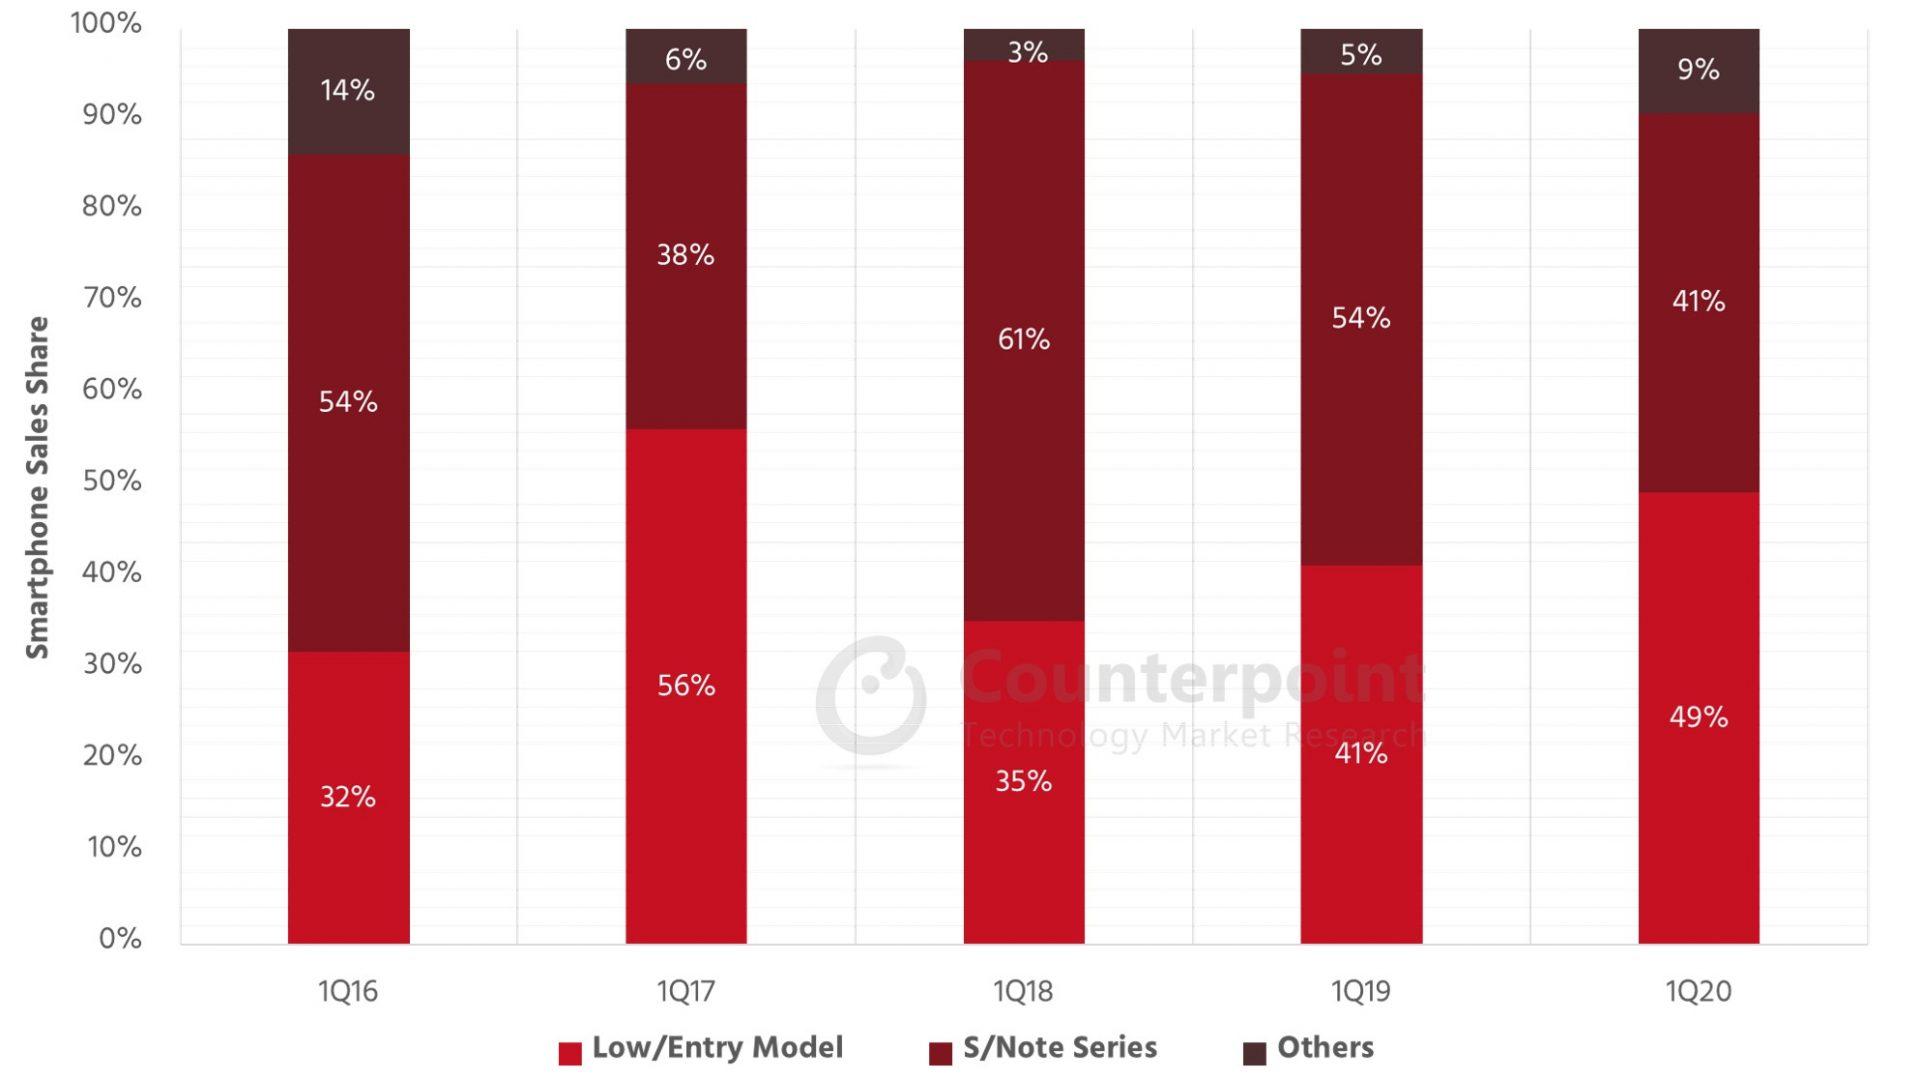 Counterpoint Samsung smartphone sales share by product group, Korea